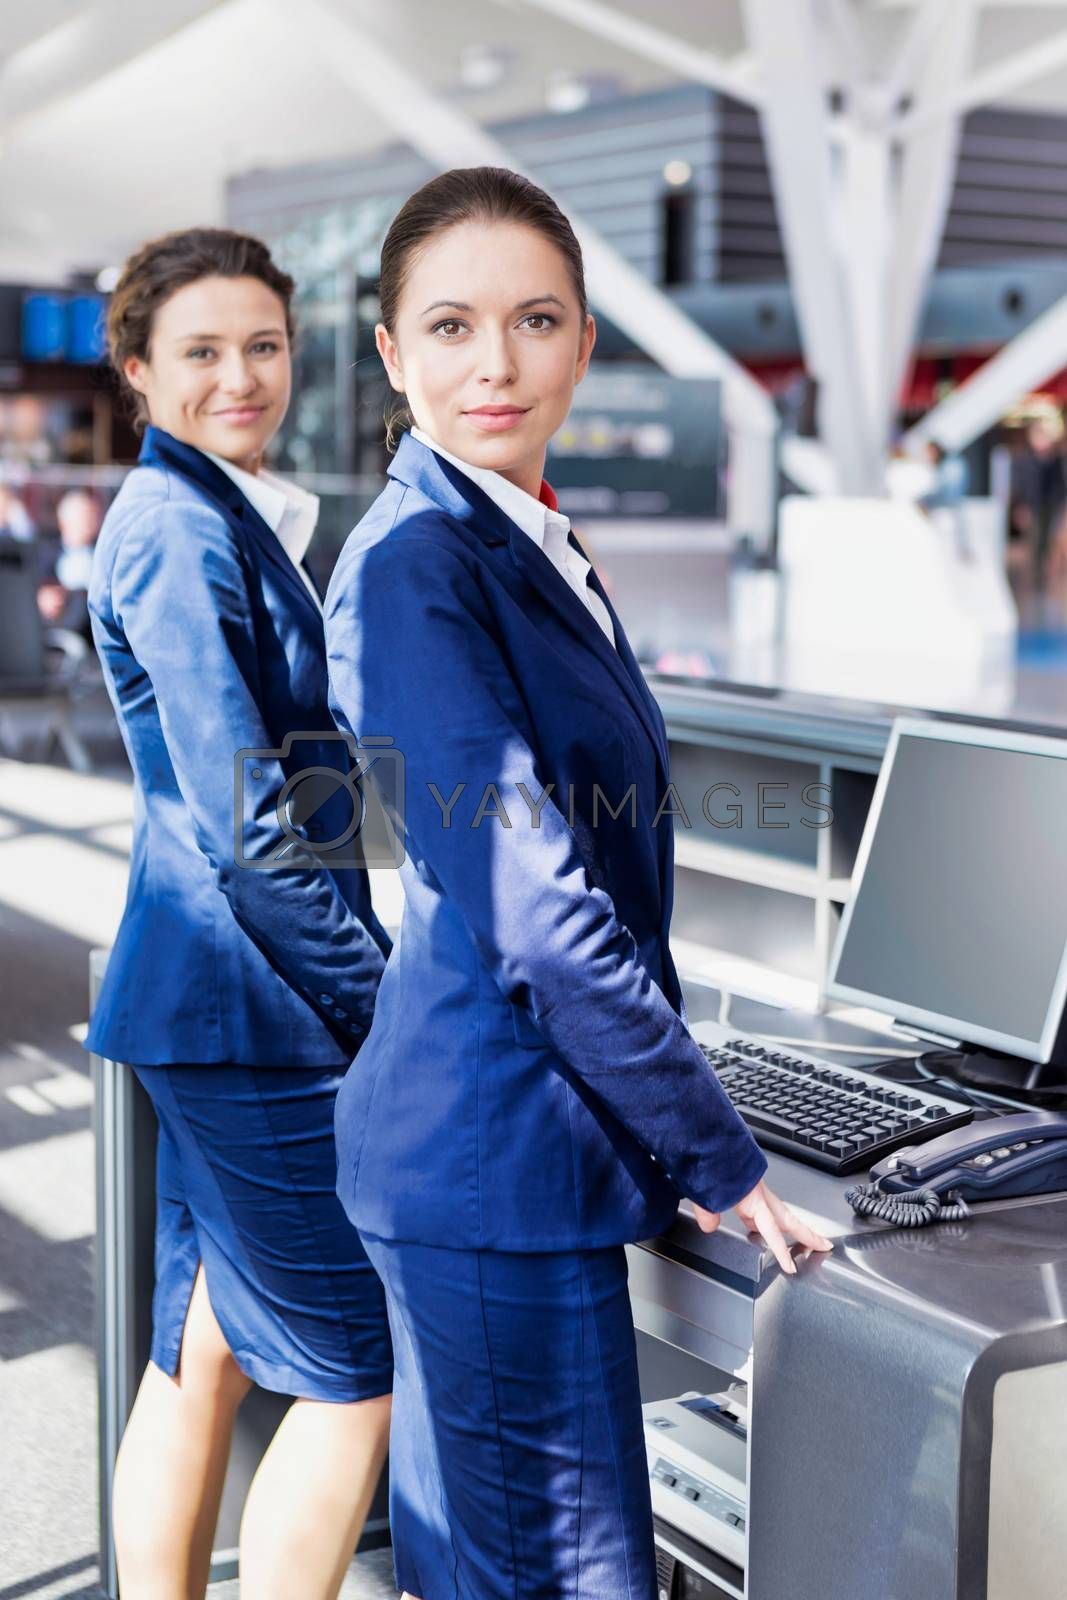 Portrait of young attractive passemger service agent standing in airport